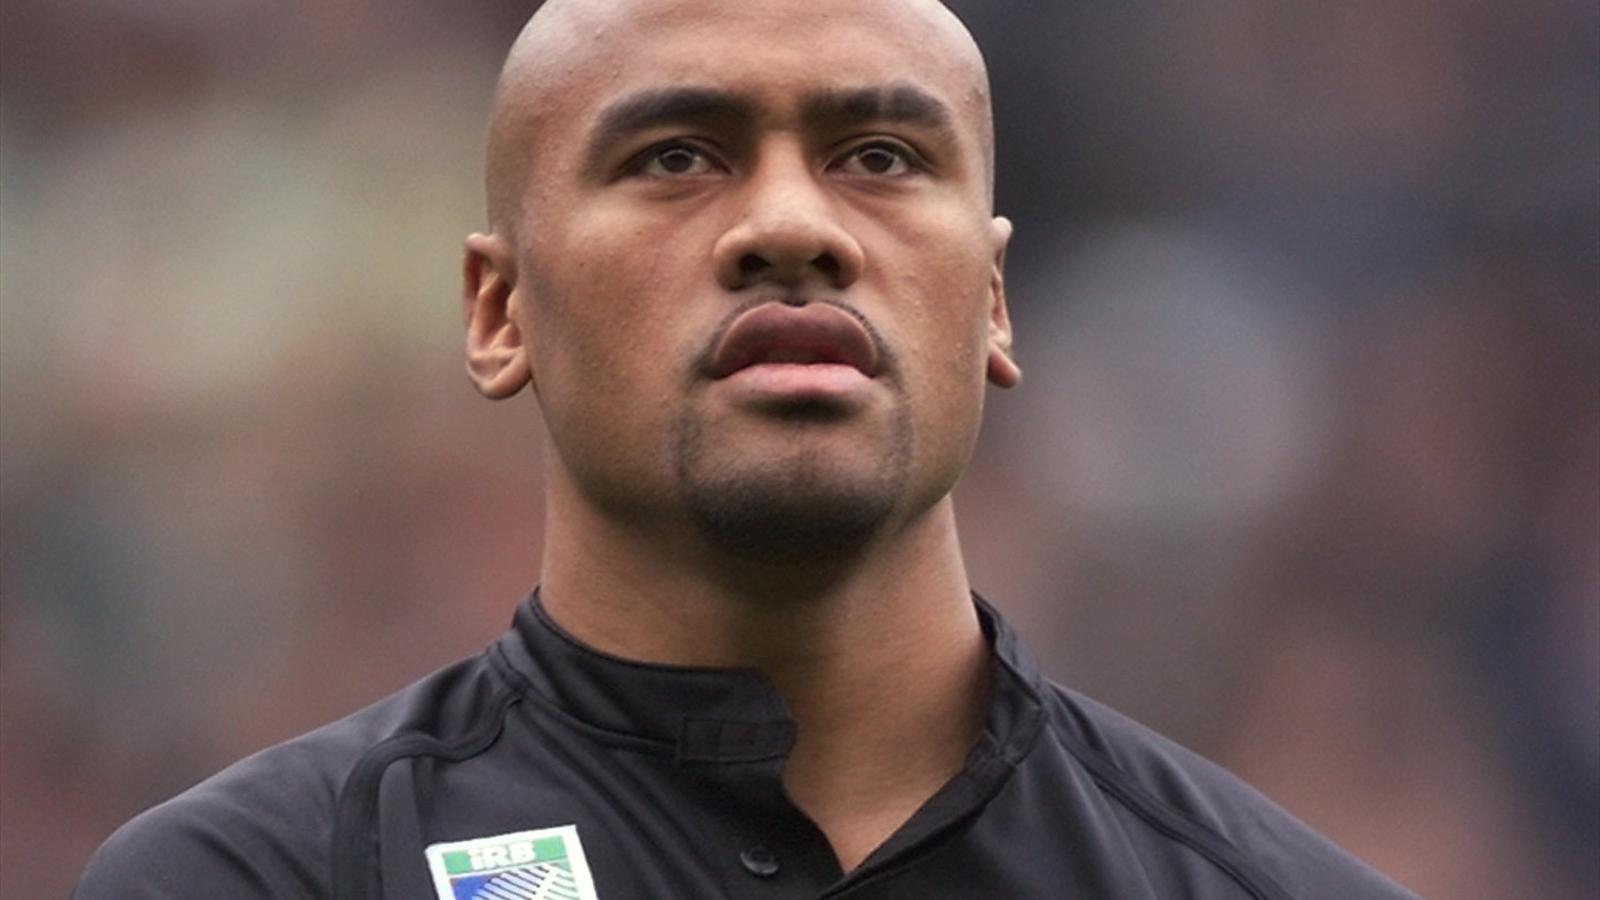 New Zealand rugby legend Jonah Lomu